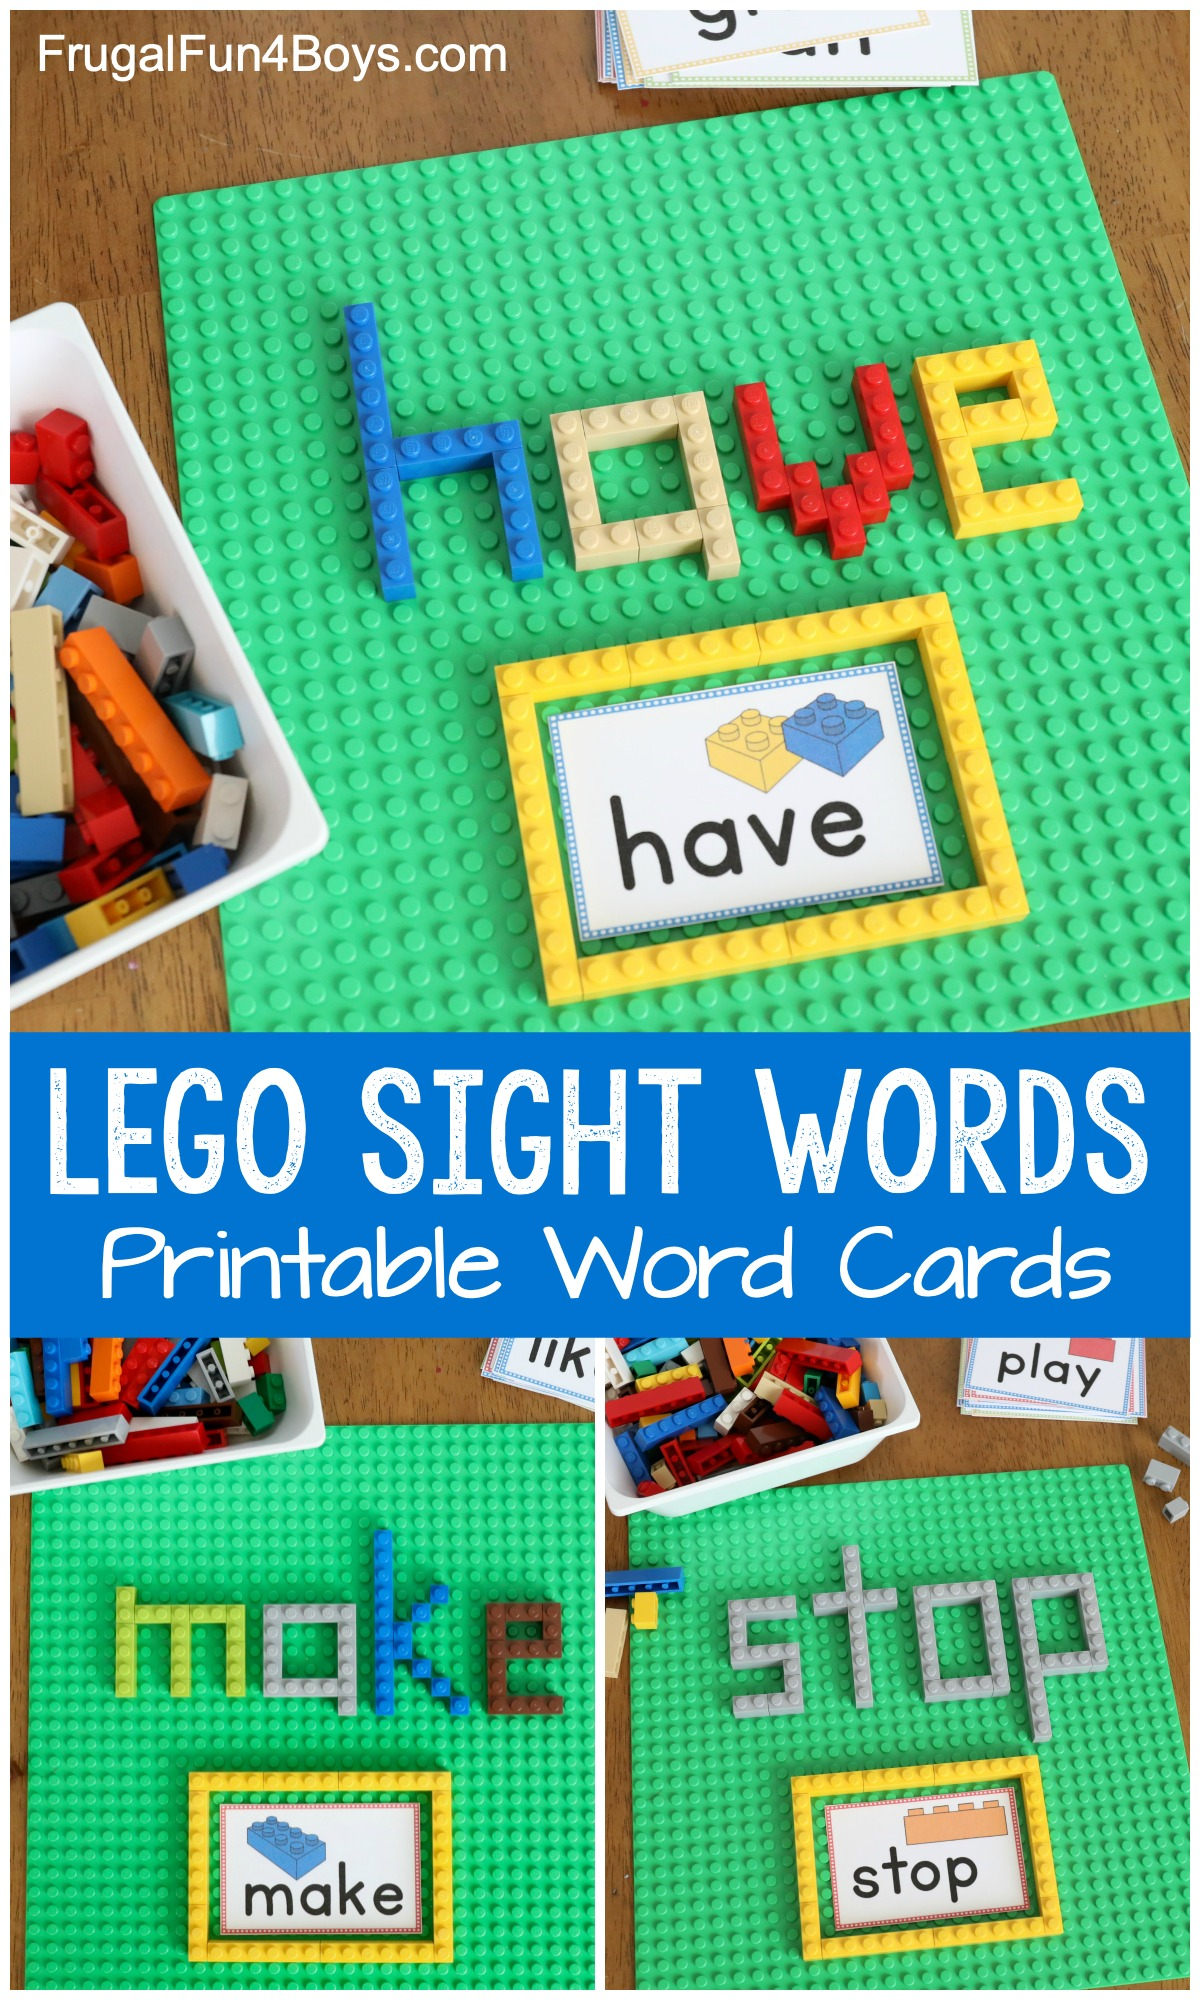 LEGO Sight Words - Printable Word Cards